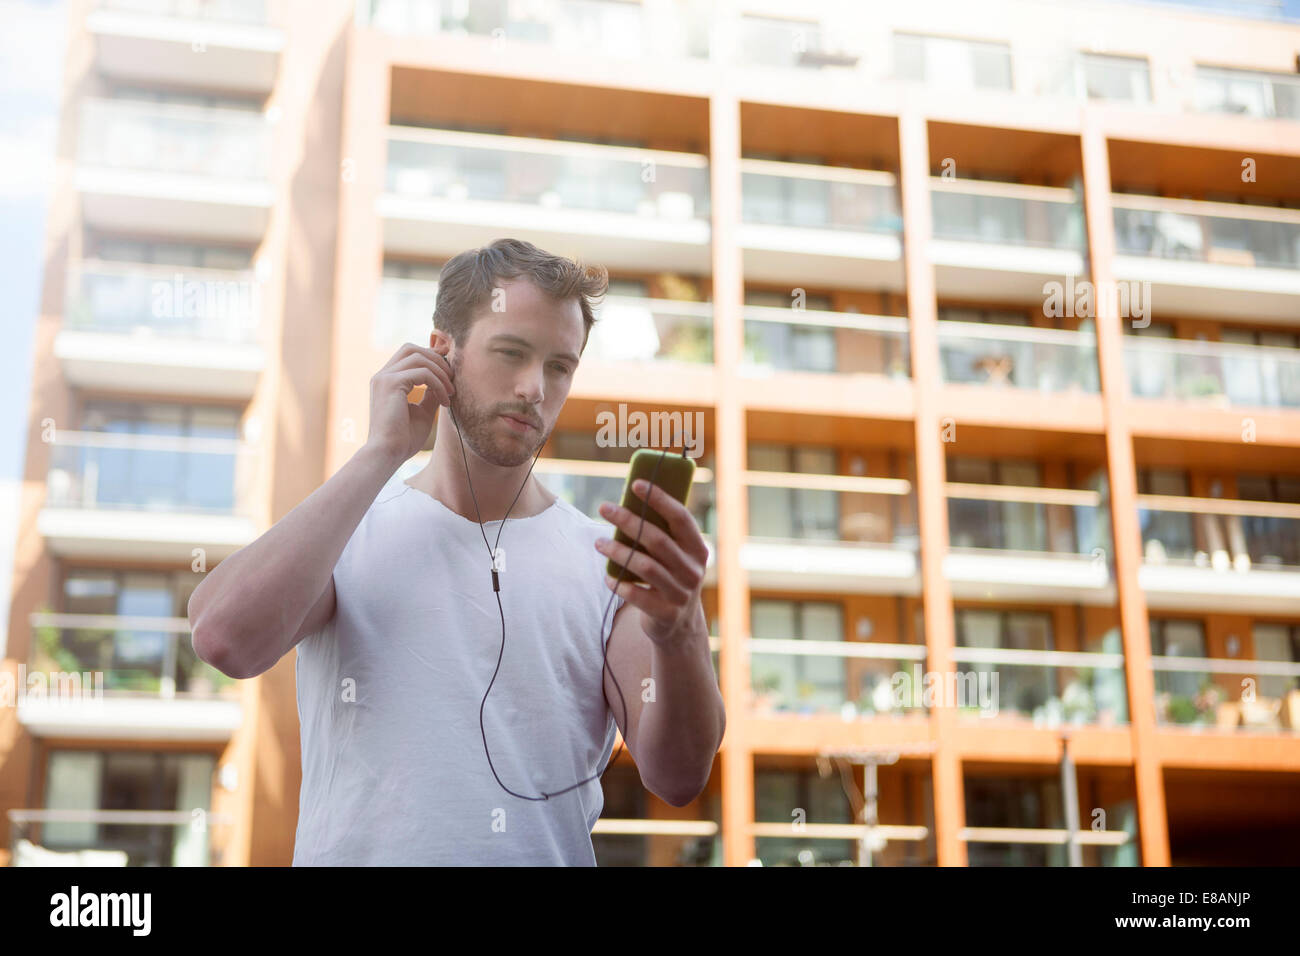 Man listening to music on headphones, building in background - Stock Image